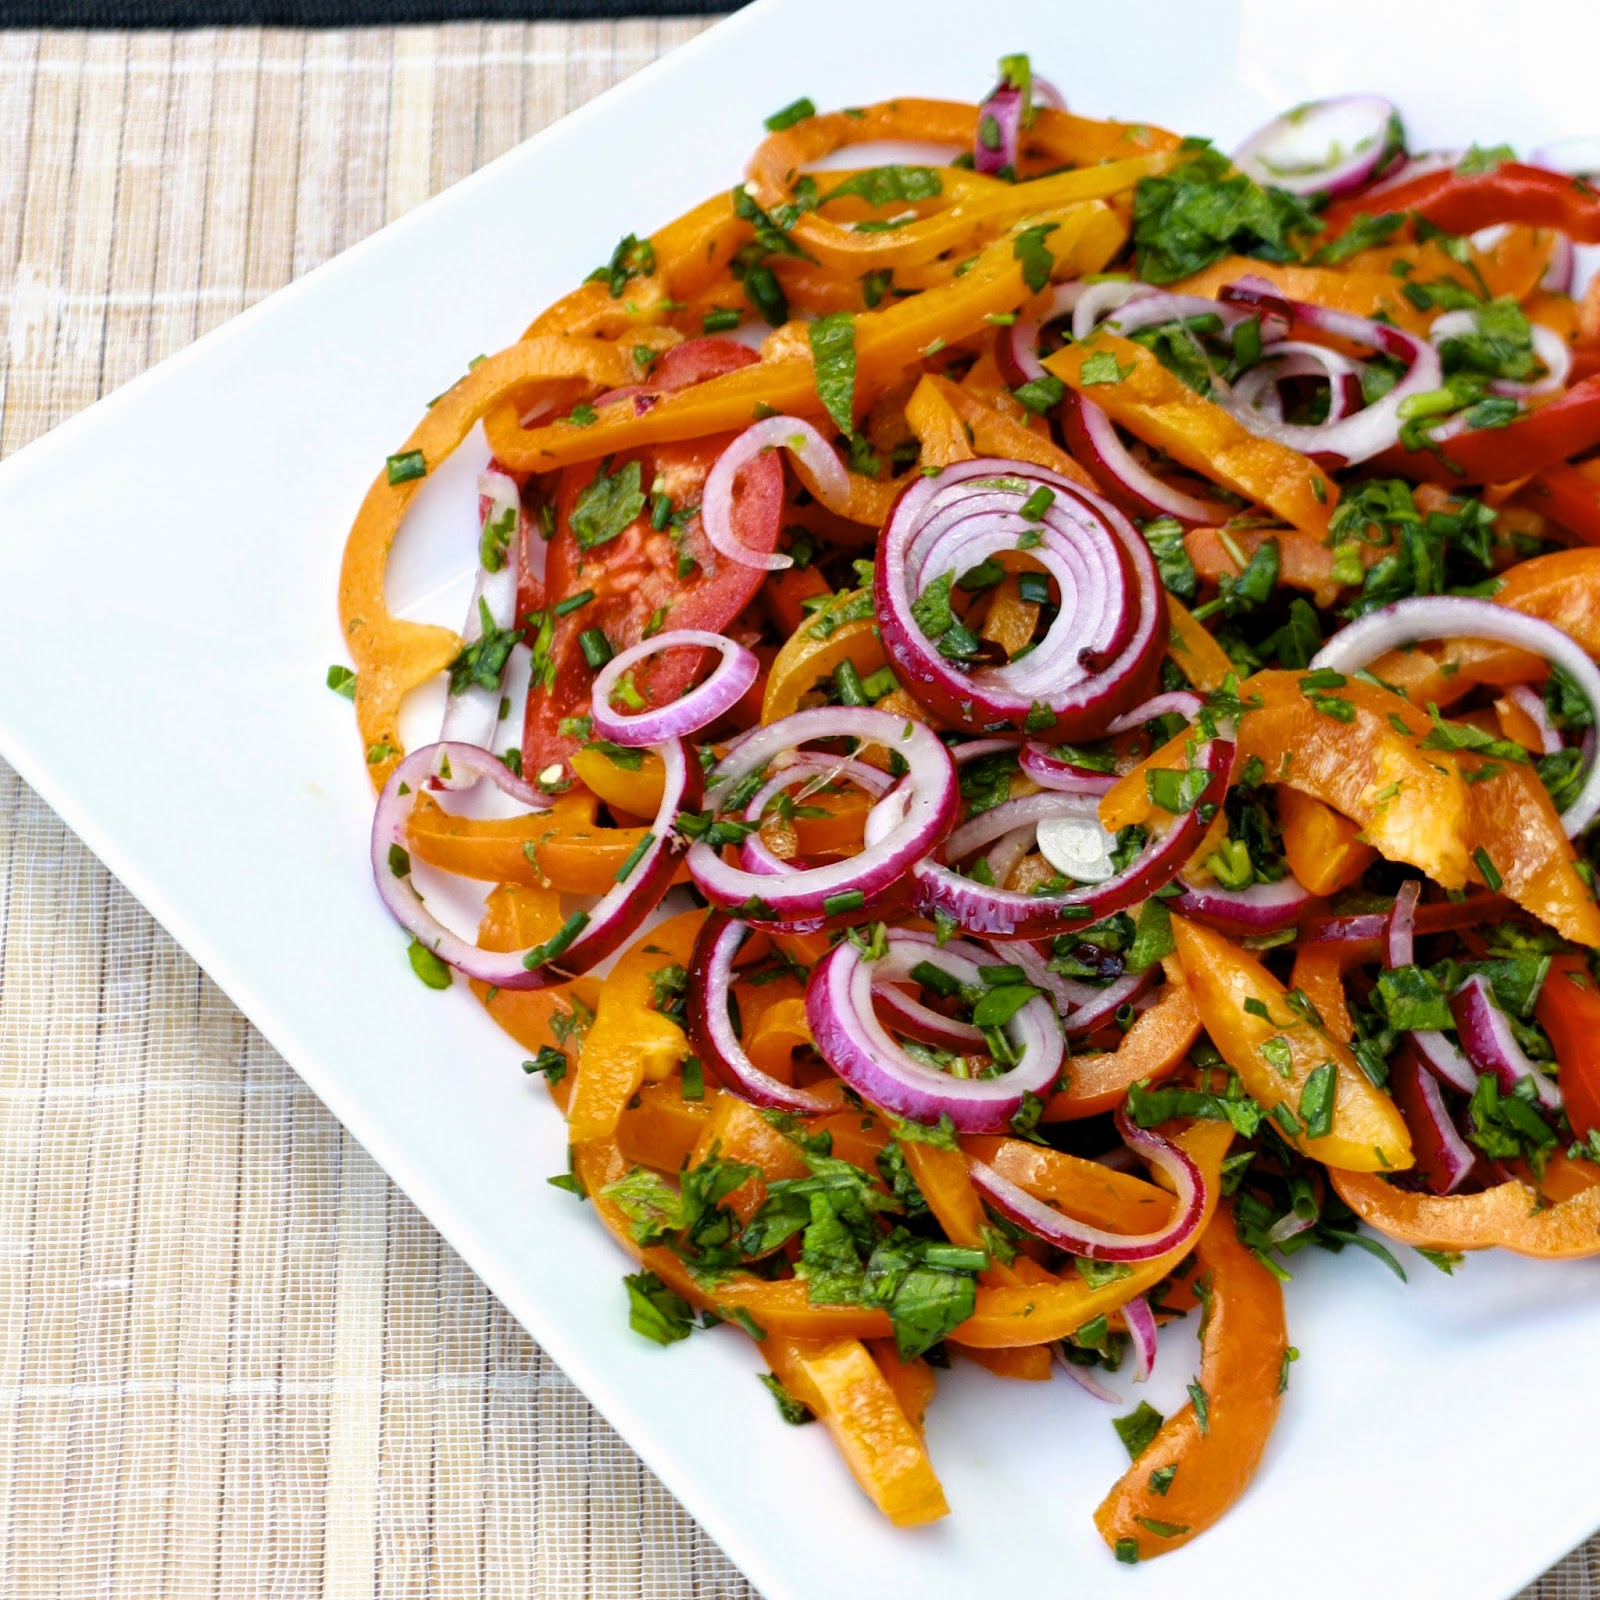 Sweet Bell Pepper and Onion Salad | The Sweets Life